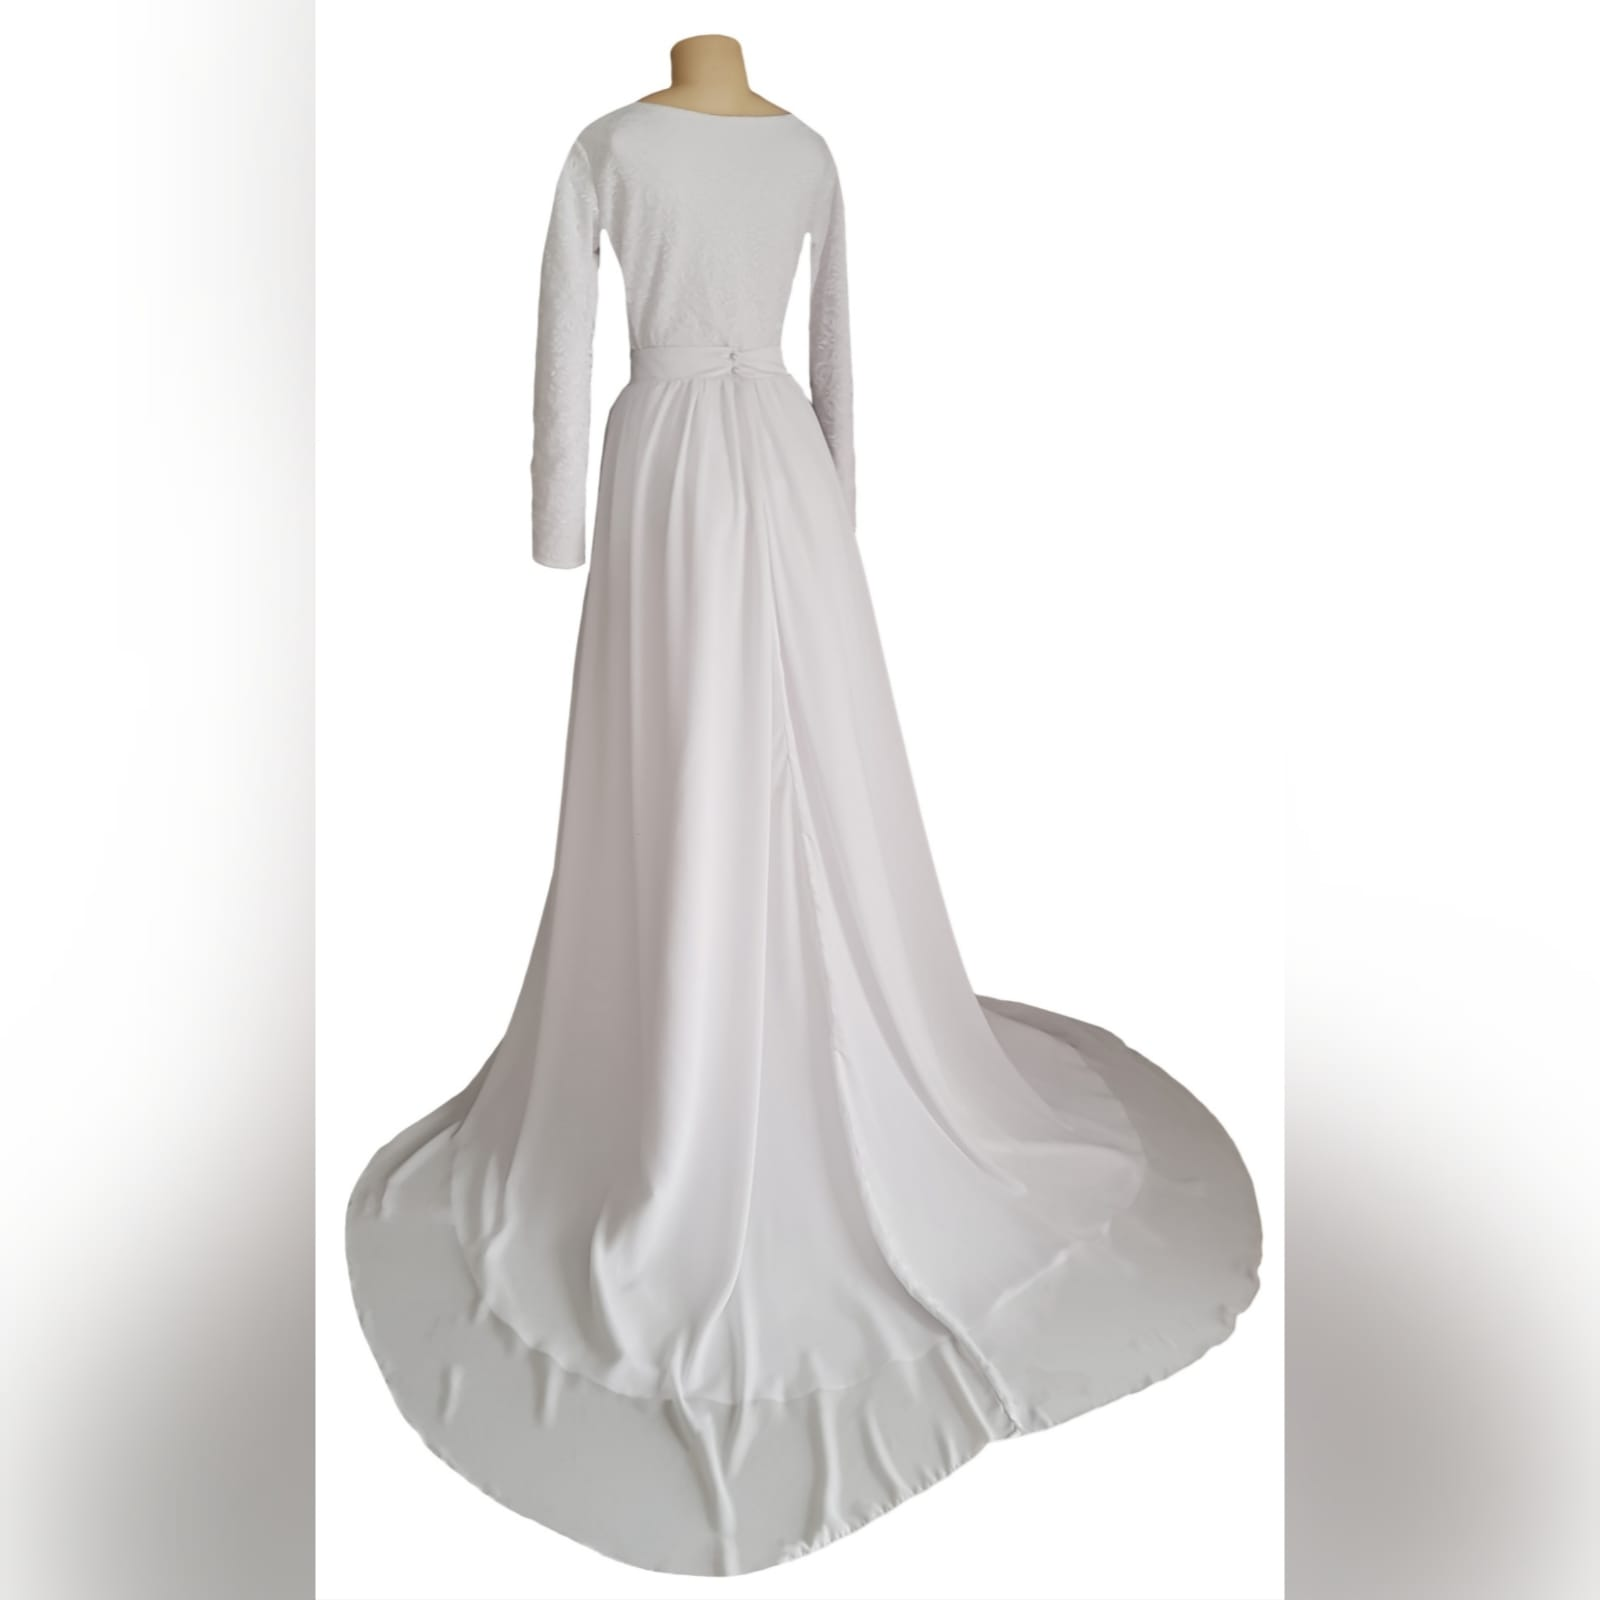 2 piece white flowy simple wedding dress 4 2 piece white flowy simple wedding dress. A bodysuit fitted lace top with long sleeves and jewel neckline. Flowy wide long skirt with a chiffon layer and a long train.